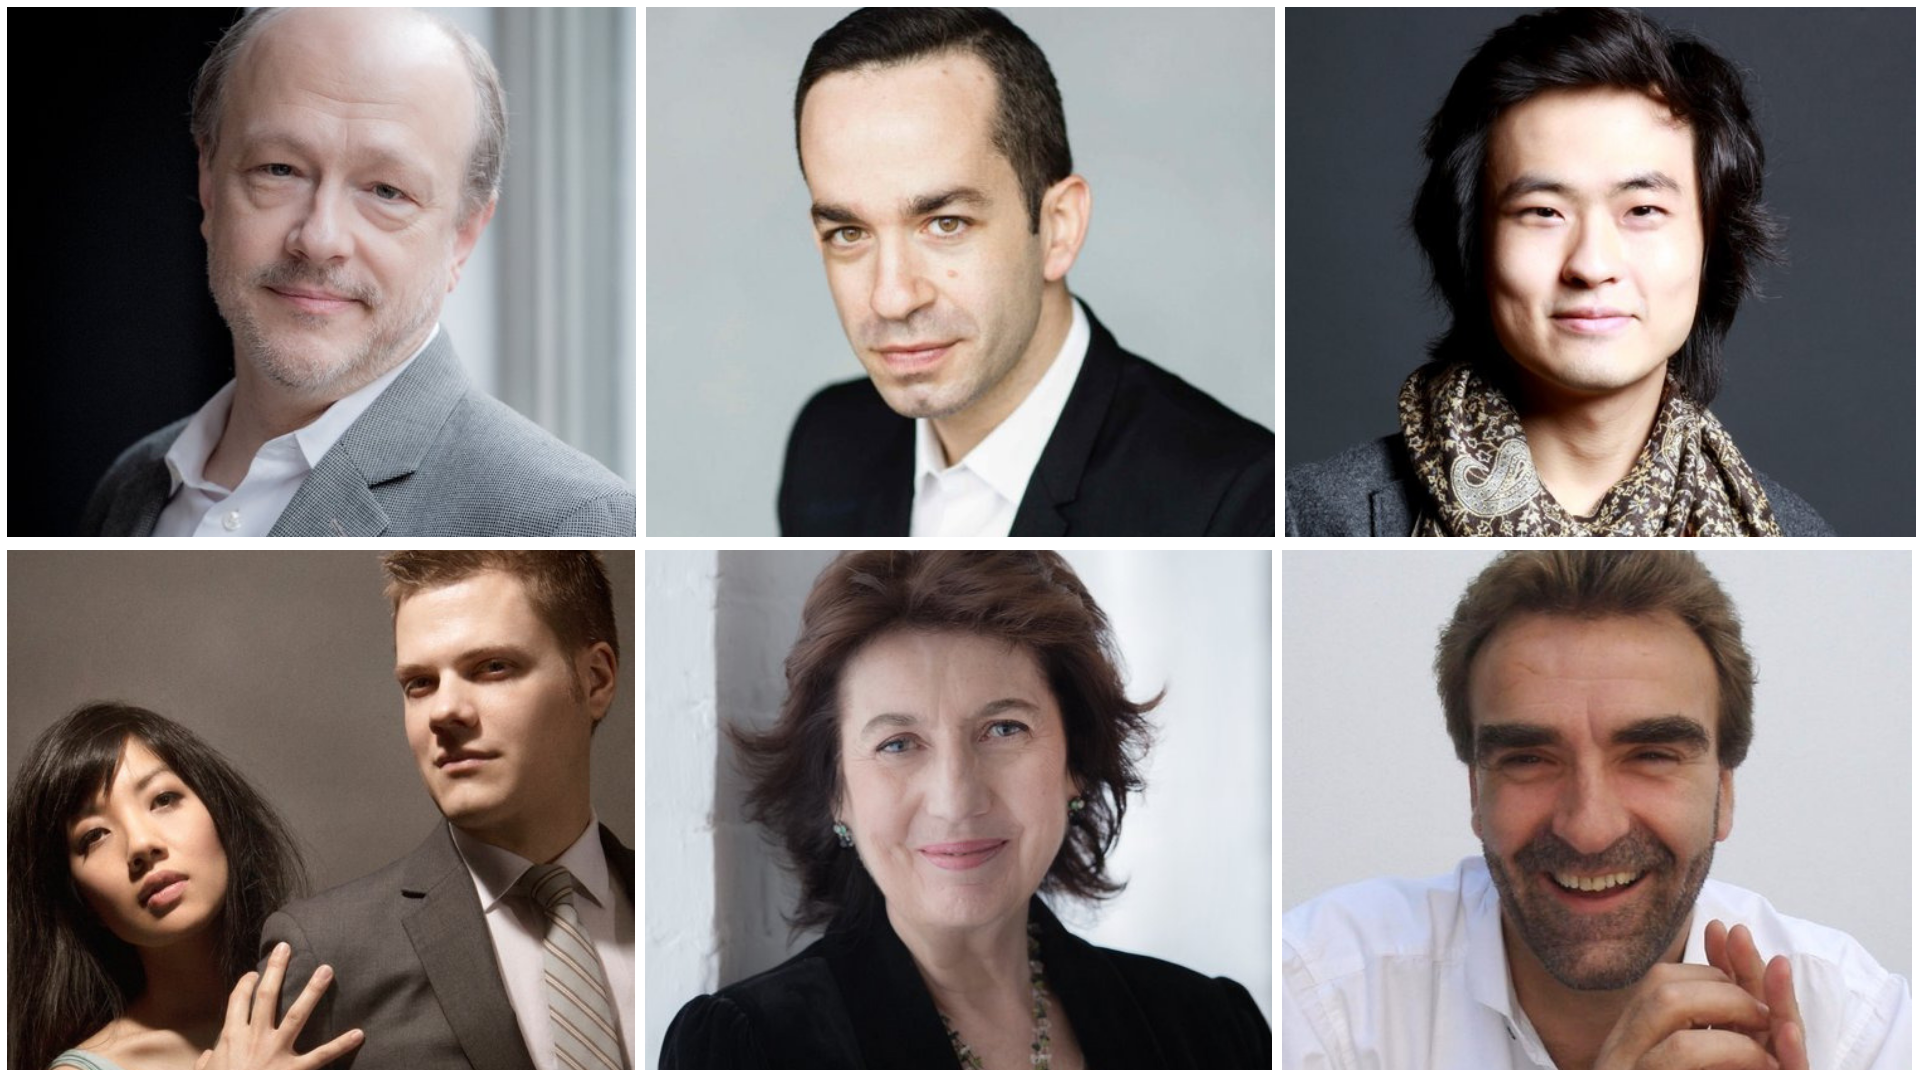 The 2019-2020 season for Portland Piano International will include, top, left to right: Marc-André Hamelin, Inon Barnatan, and Dasol Kim; bottom, from left to right: Anderson & Roe, Imogen Cooper, and Jonathan Plowright.